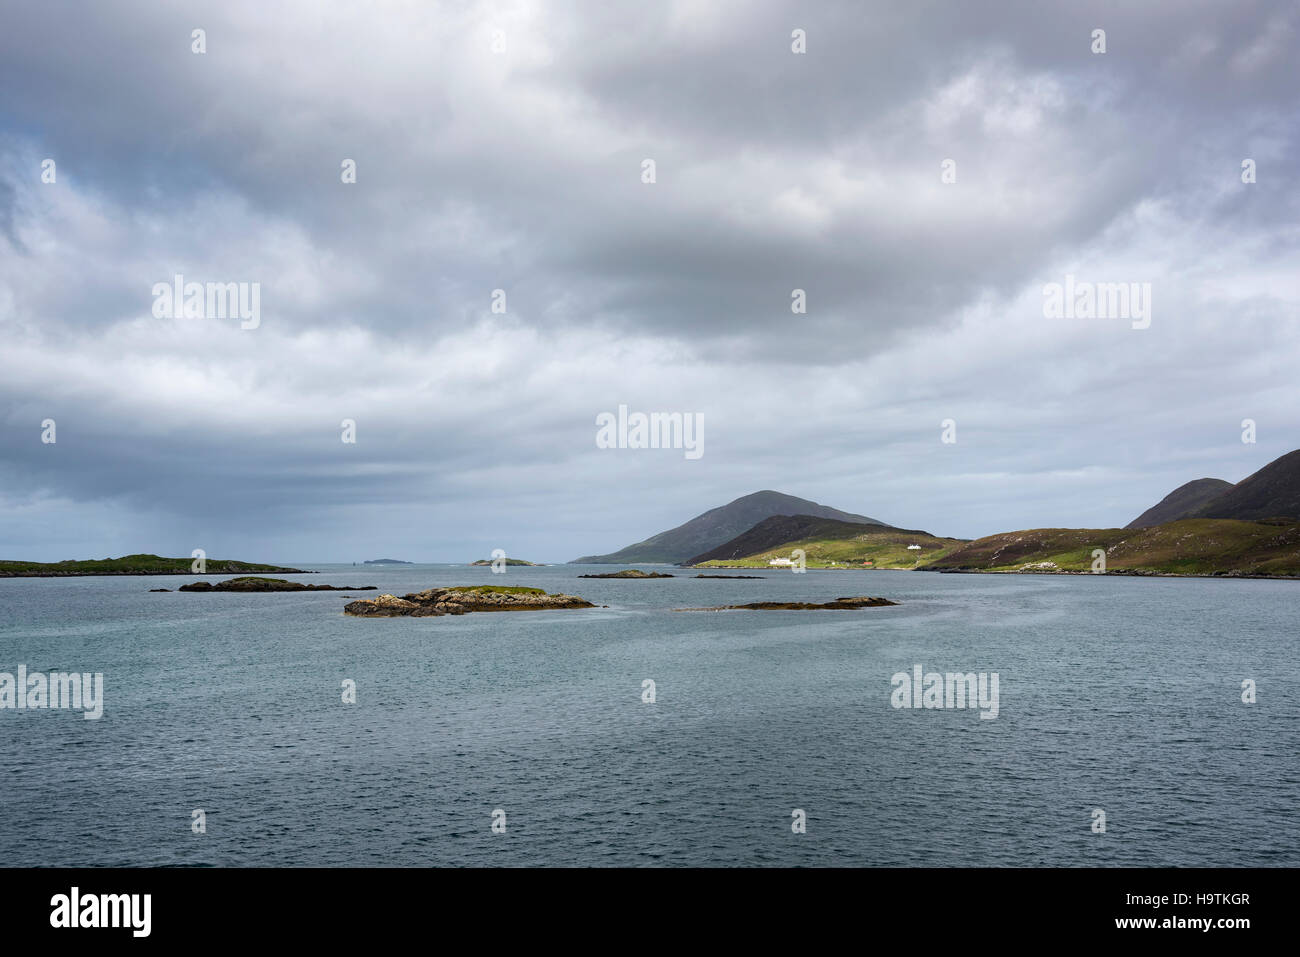 Coastline, Isle of Harris, Leverburgh, Outer Hebrides, Scotland, United Kingdom - Stock Image